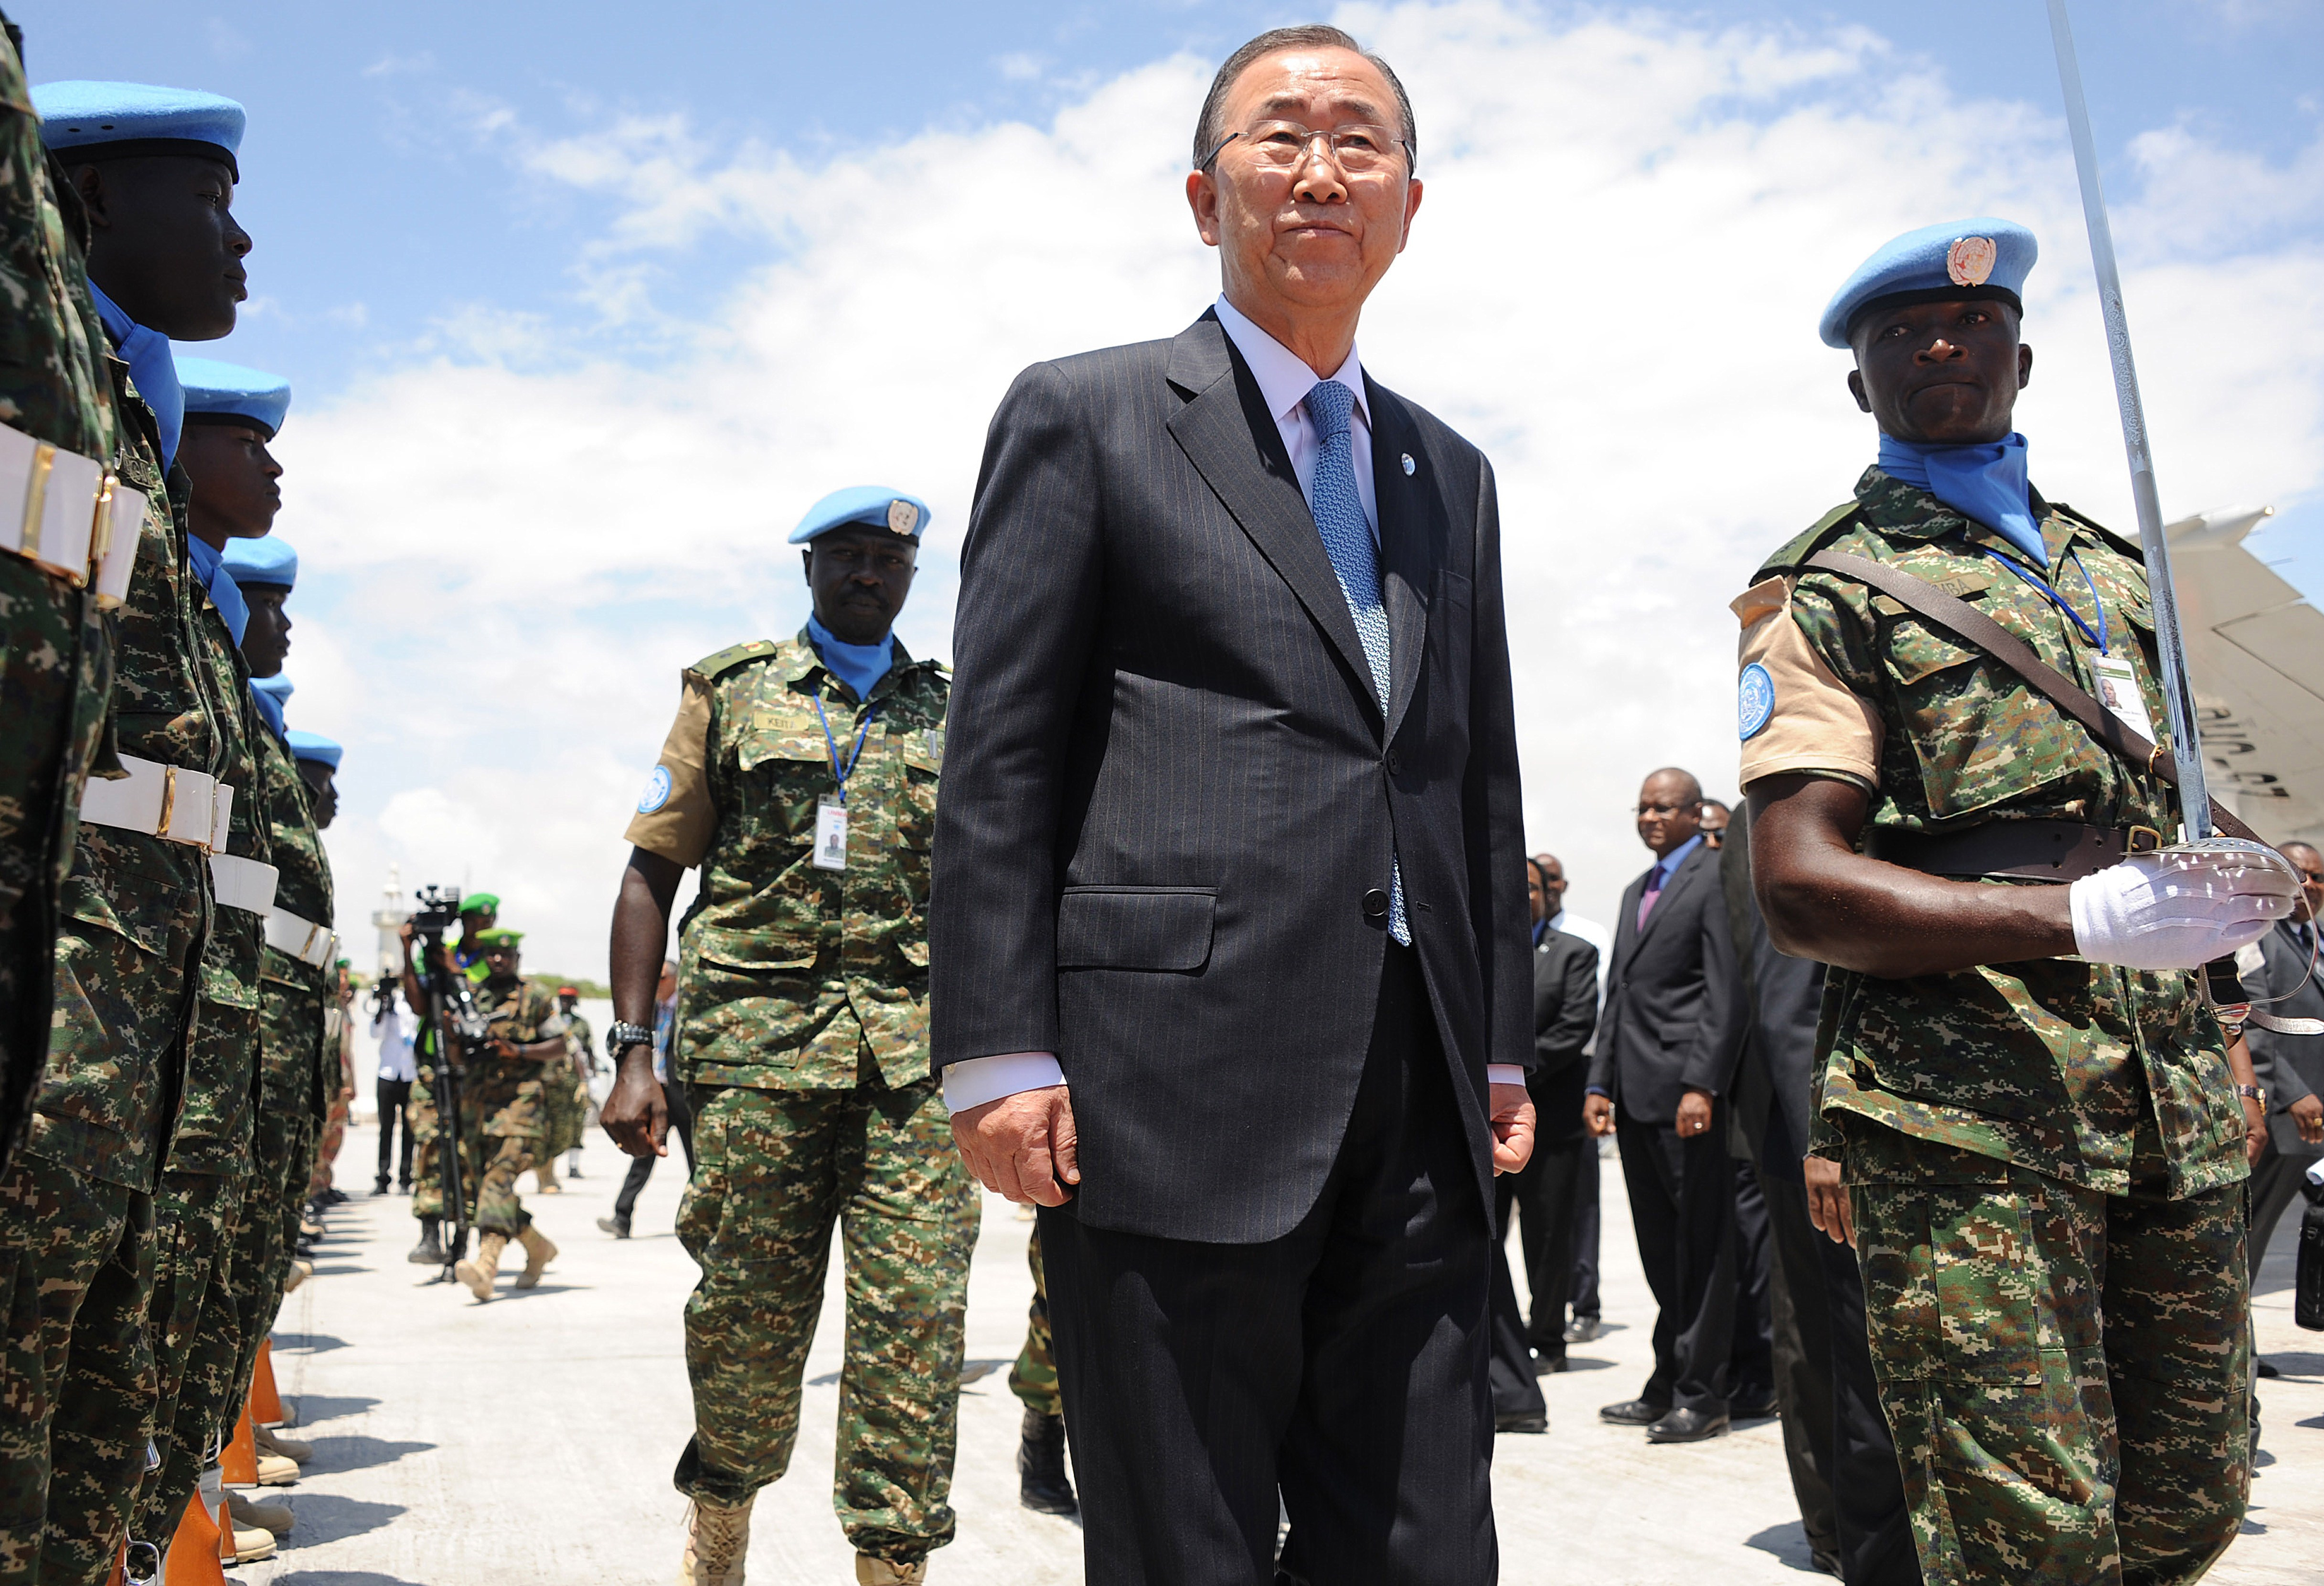 UN: New Sexual Abuse Allegations in Central African Republic